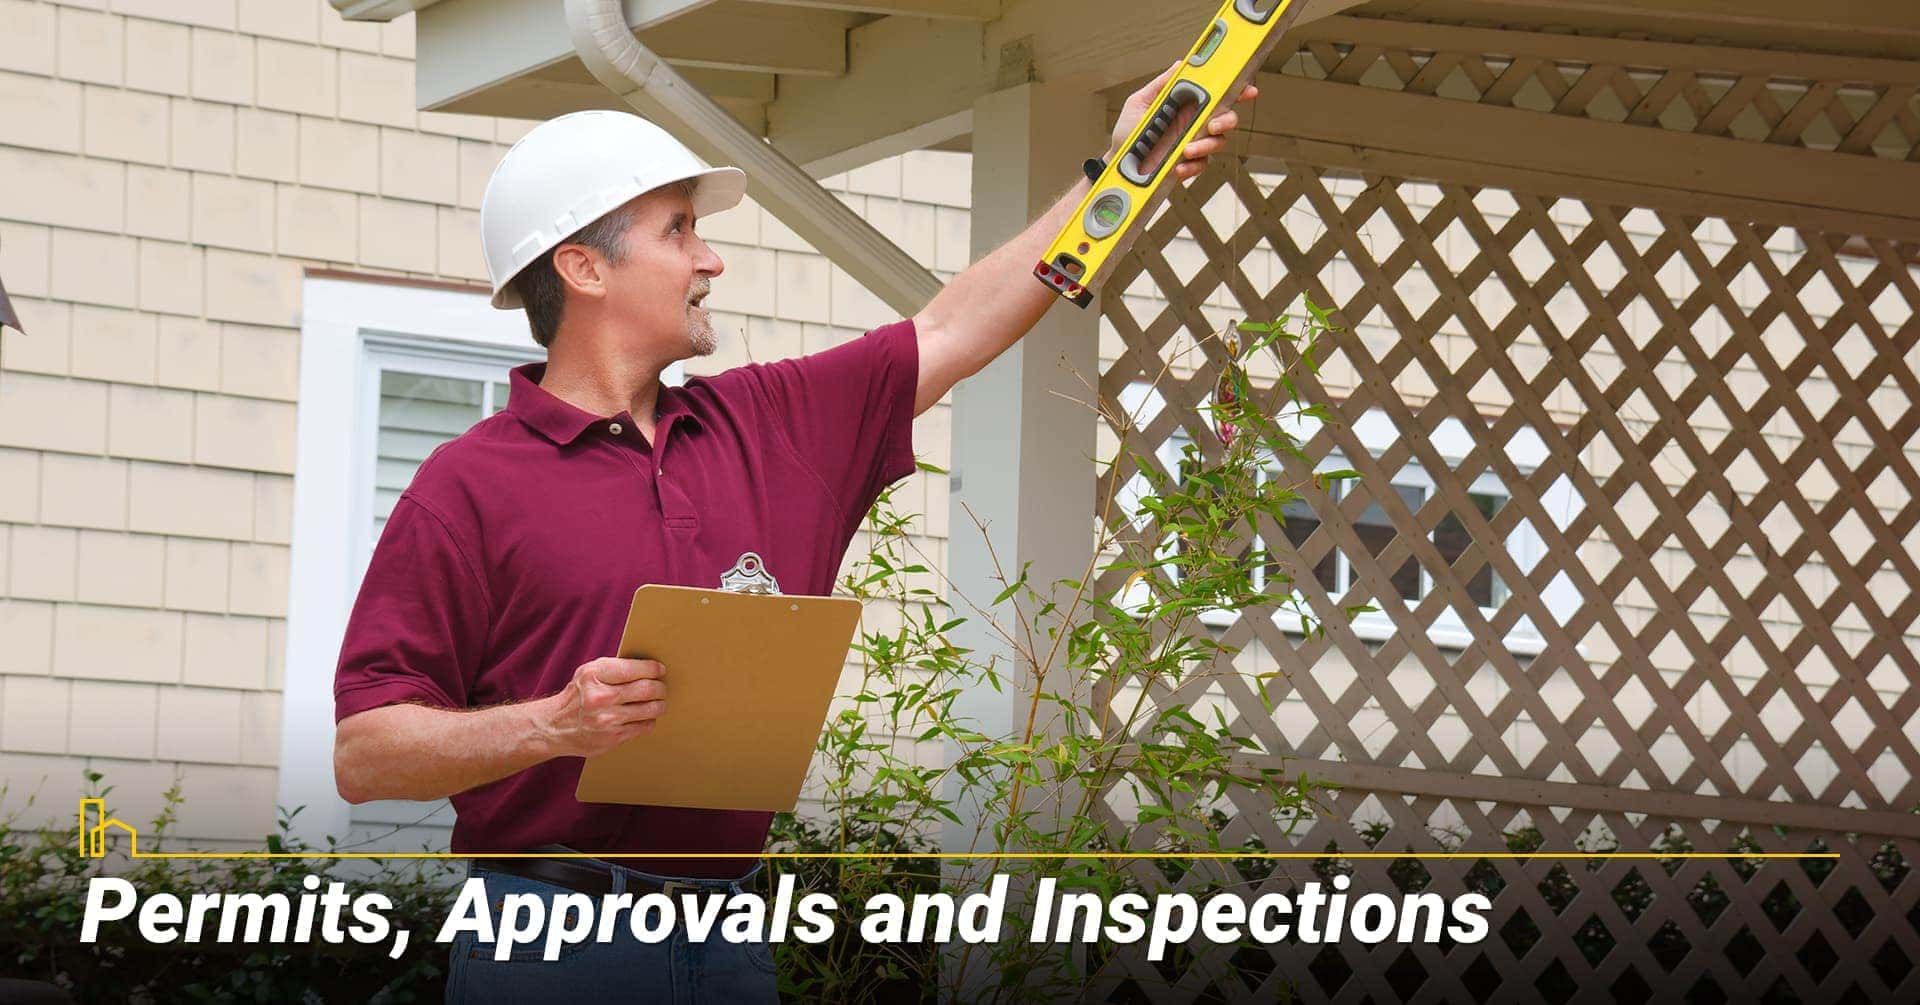 Permits, Approvals and Inspections, get all legal paperwork before you start